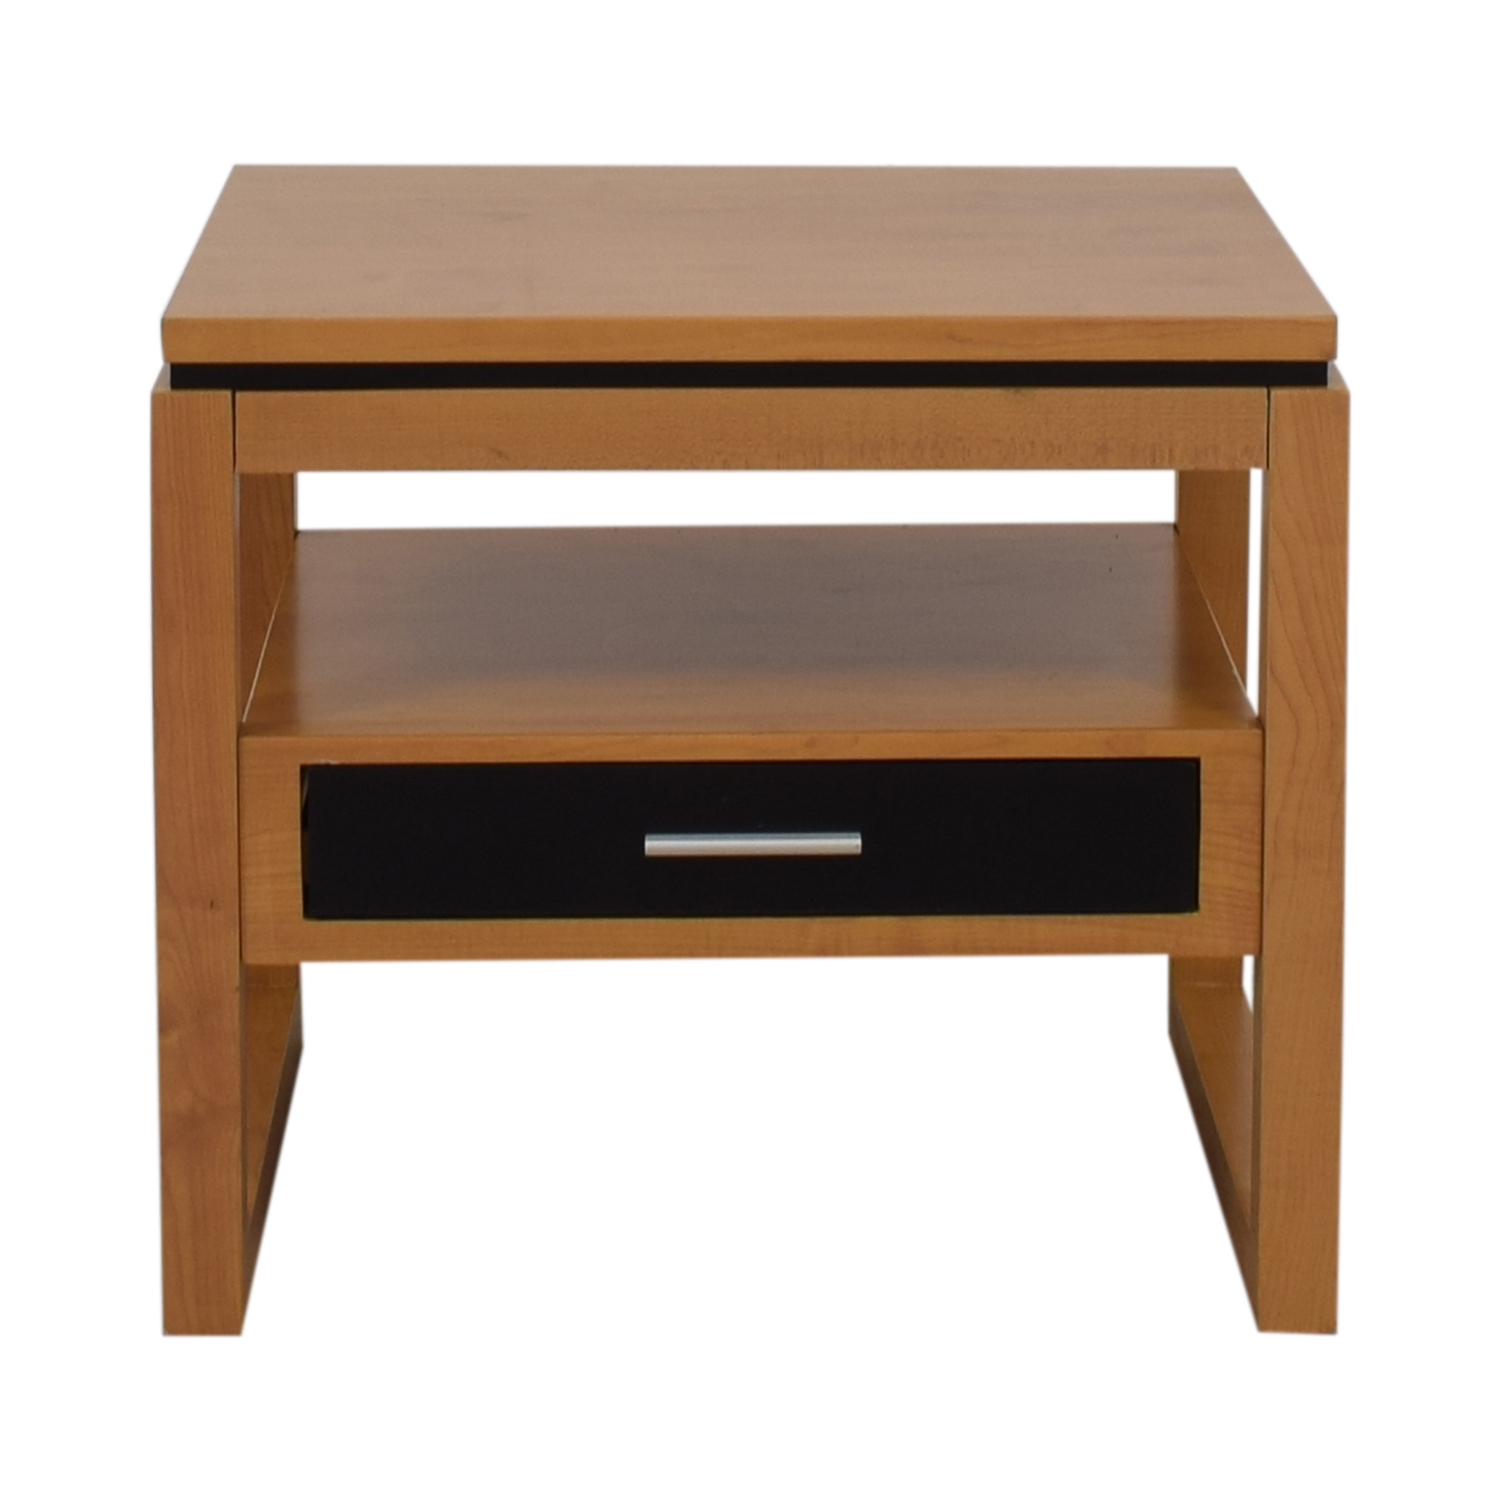 Coaster Coaster Black Single Drawer Natural Finish End Table